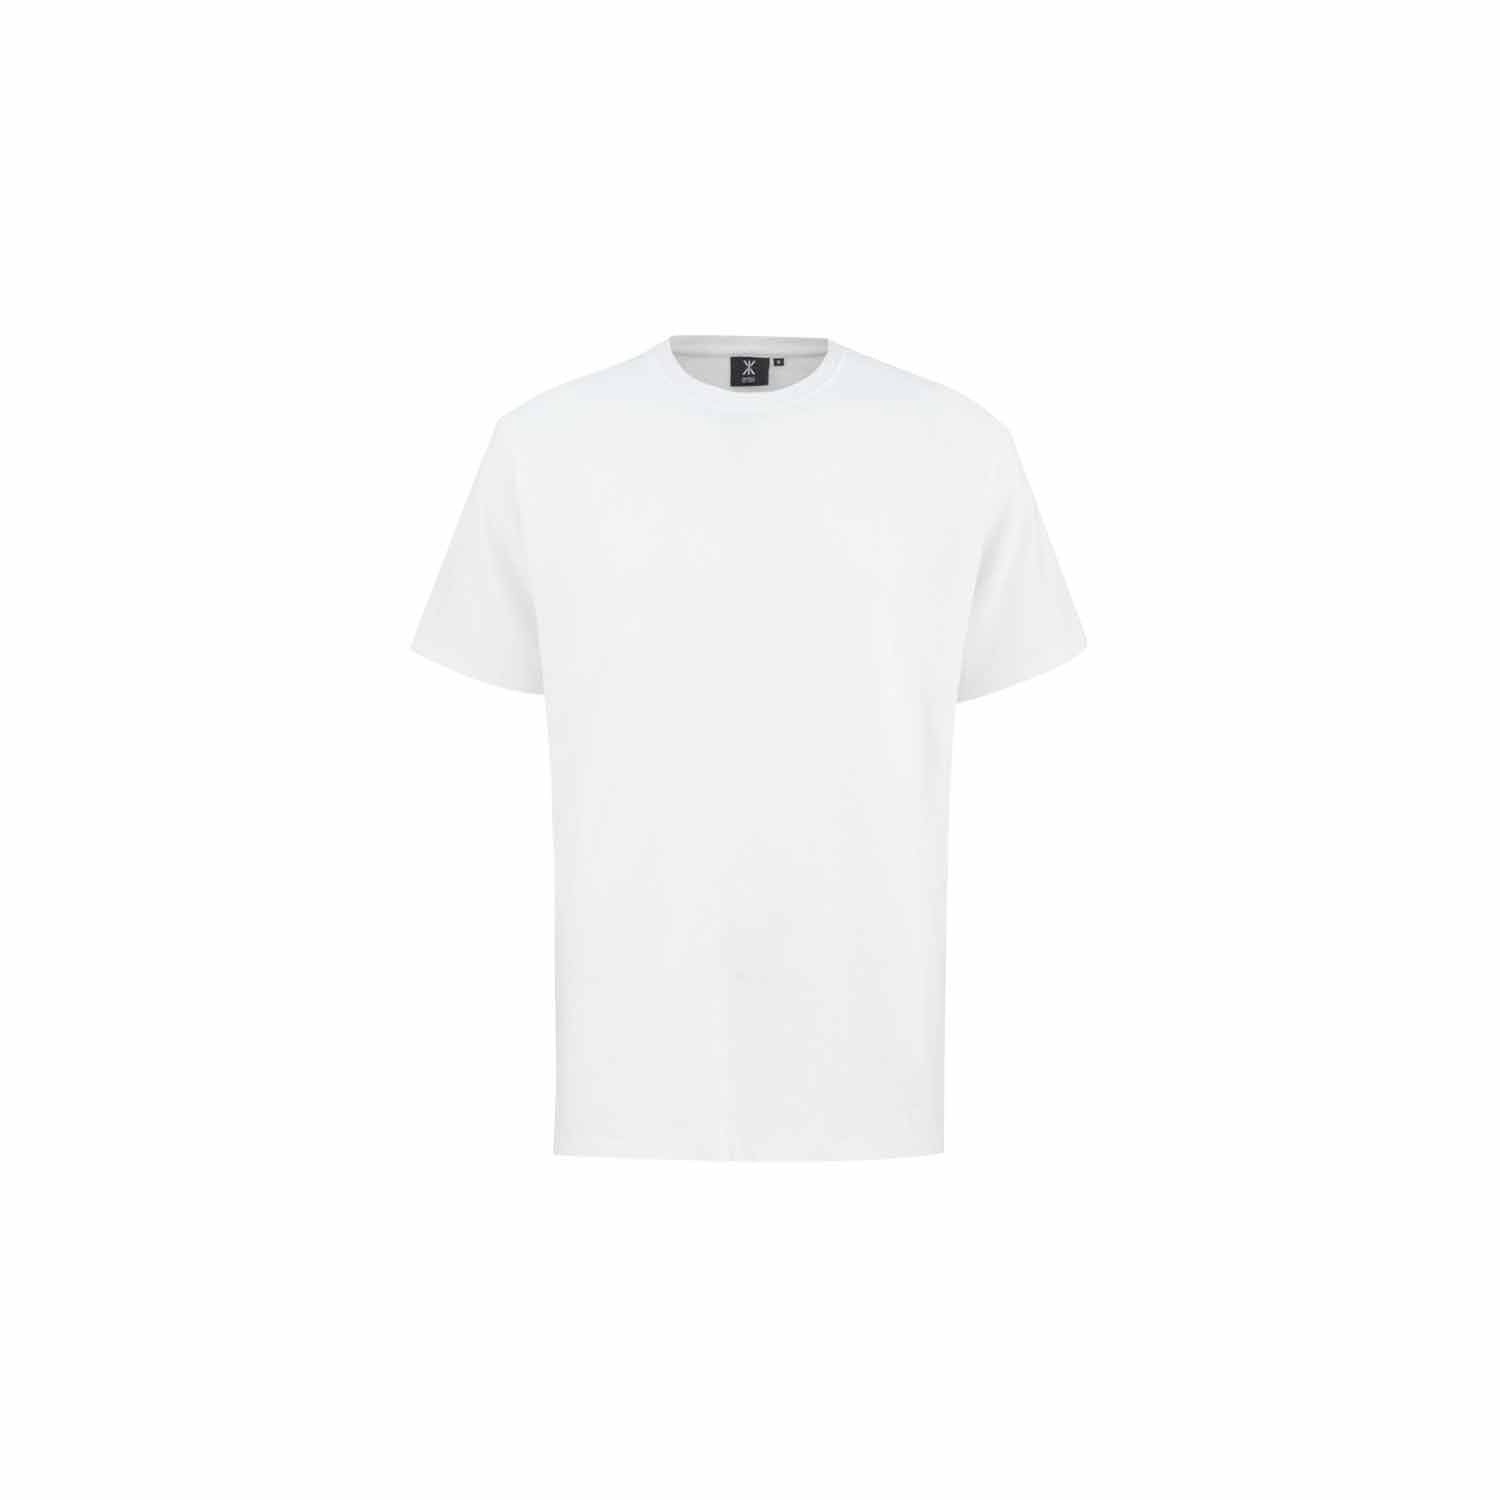 NVJS White Kids Medium